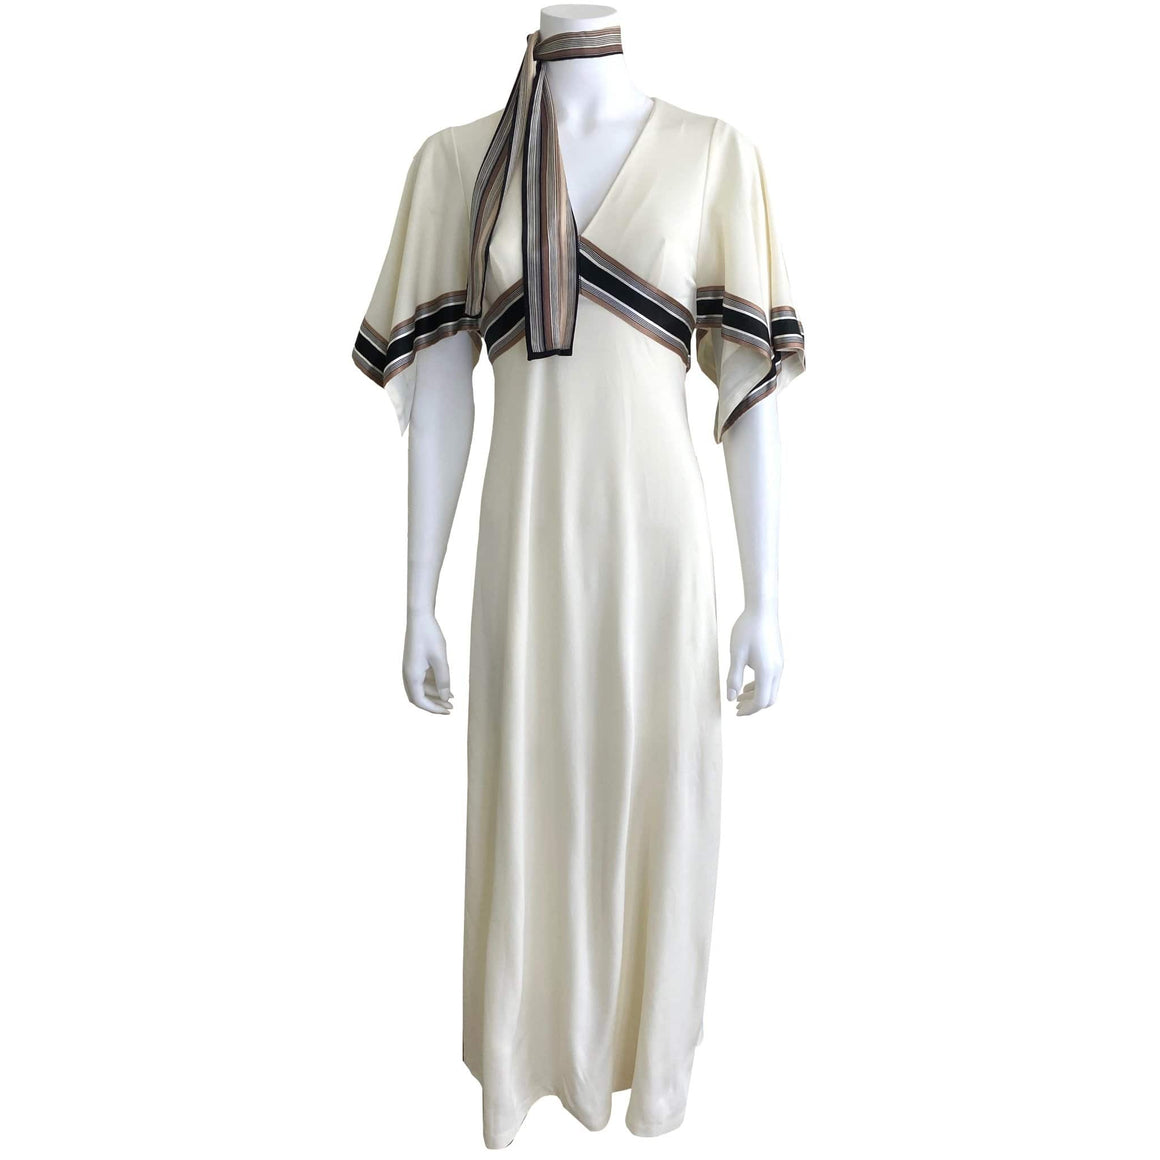 Vintage 1970s Allegro Cream Dress Silk Banded Handkerchief Sleeves Scarf - kristina iulo | a private vintage collection